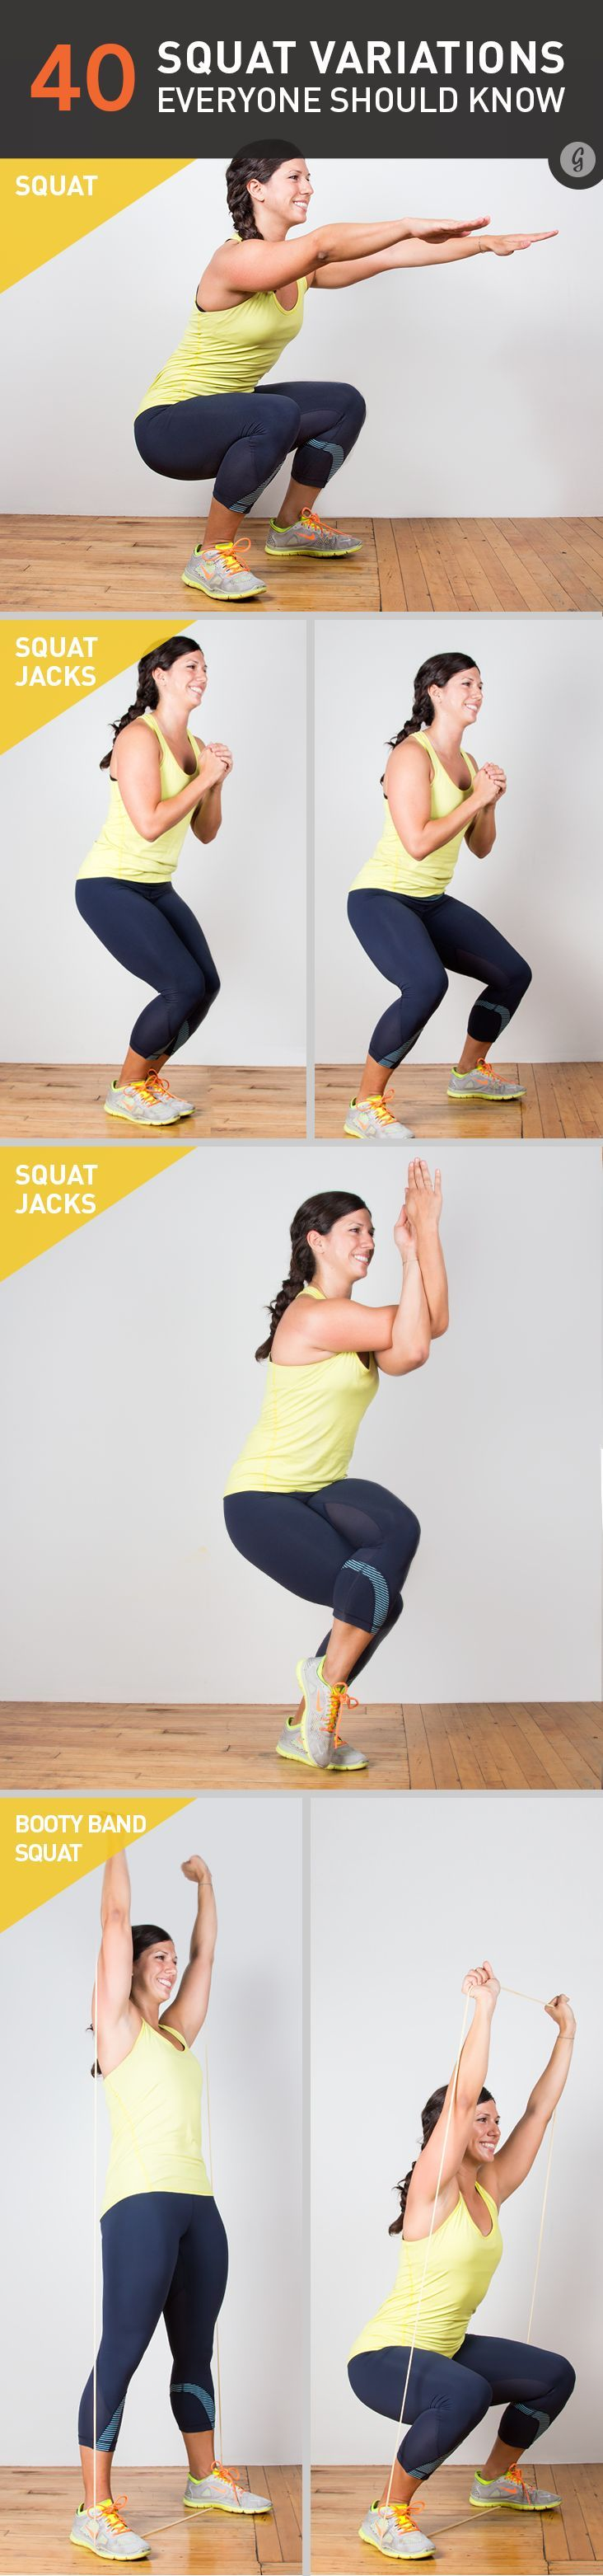 Squats are the ultimate exercise for toning legs and boosting that booty.